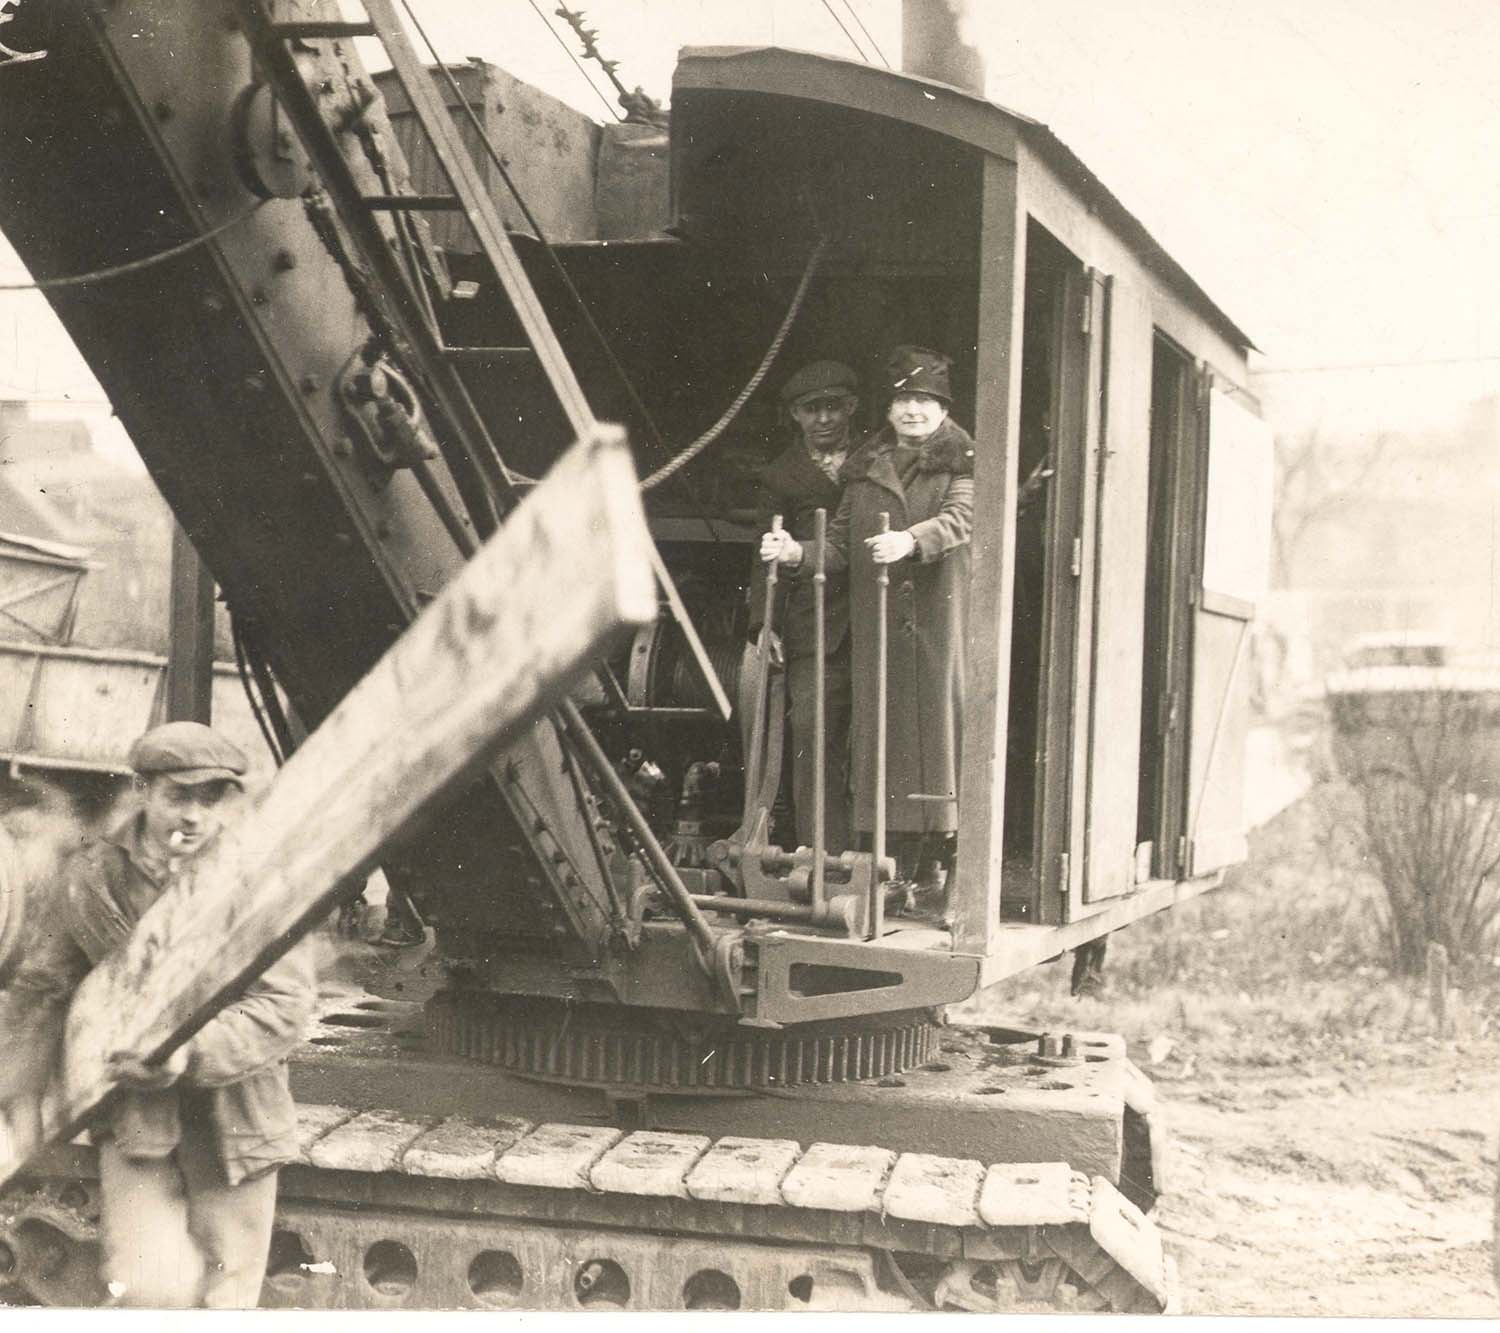 Annie Jacobs Davis operating a steam shovel during the groundbreaking ceremony for Montefiore Hospital on Fifth Avenue, 1927.